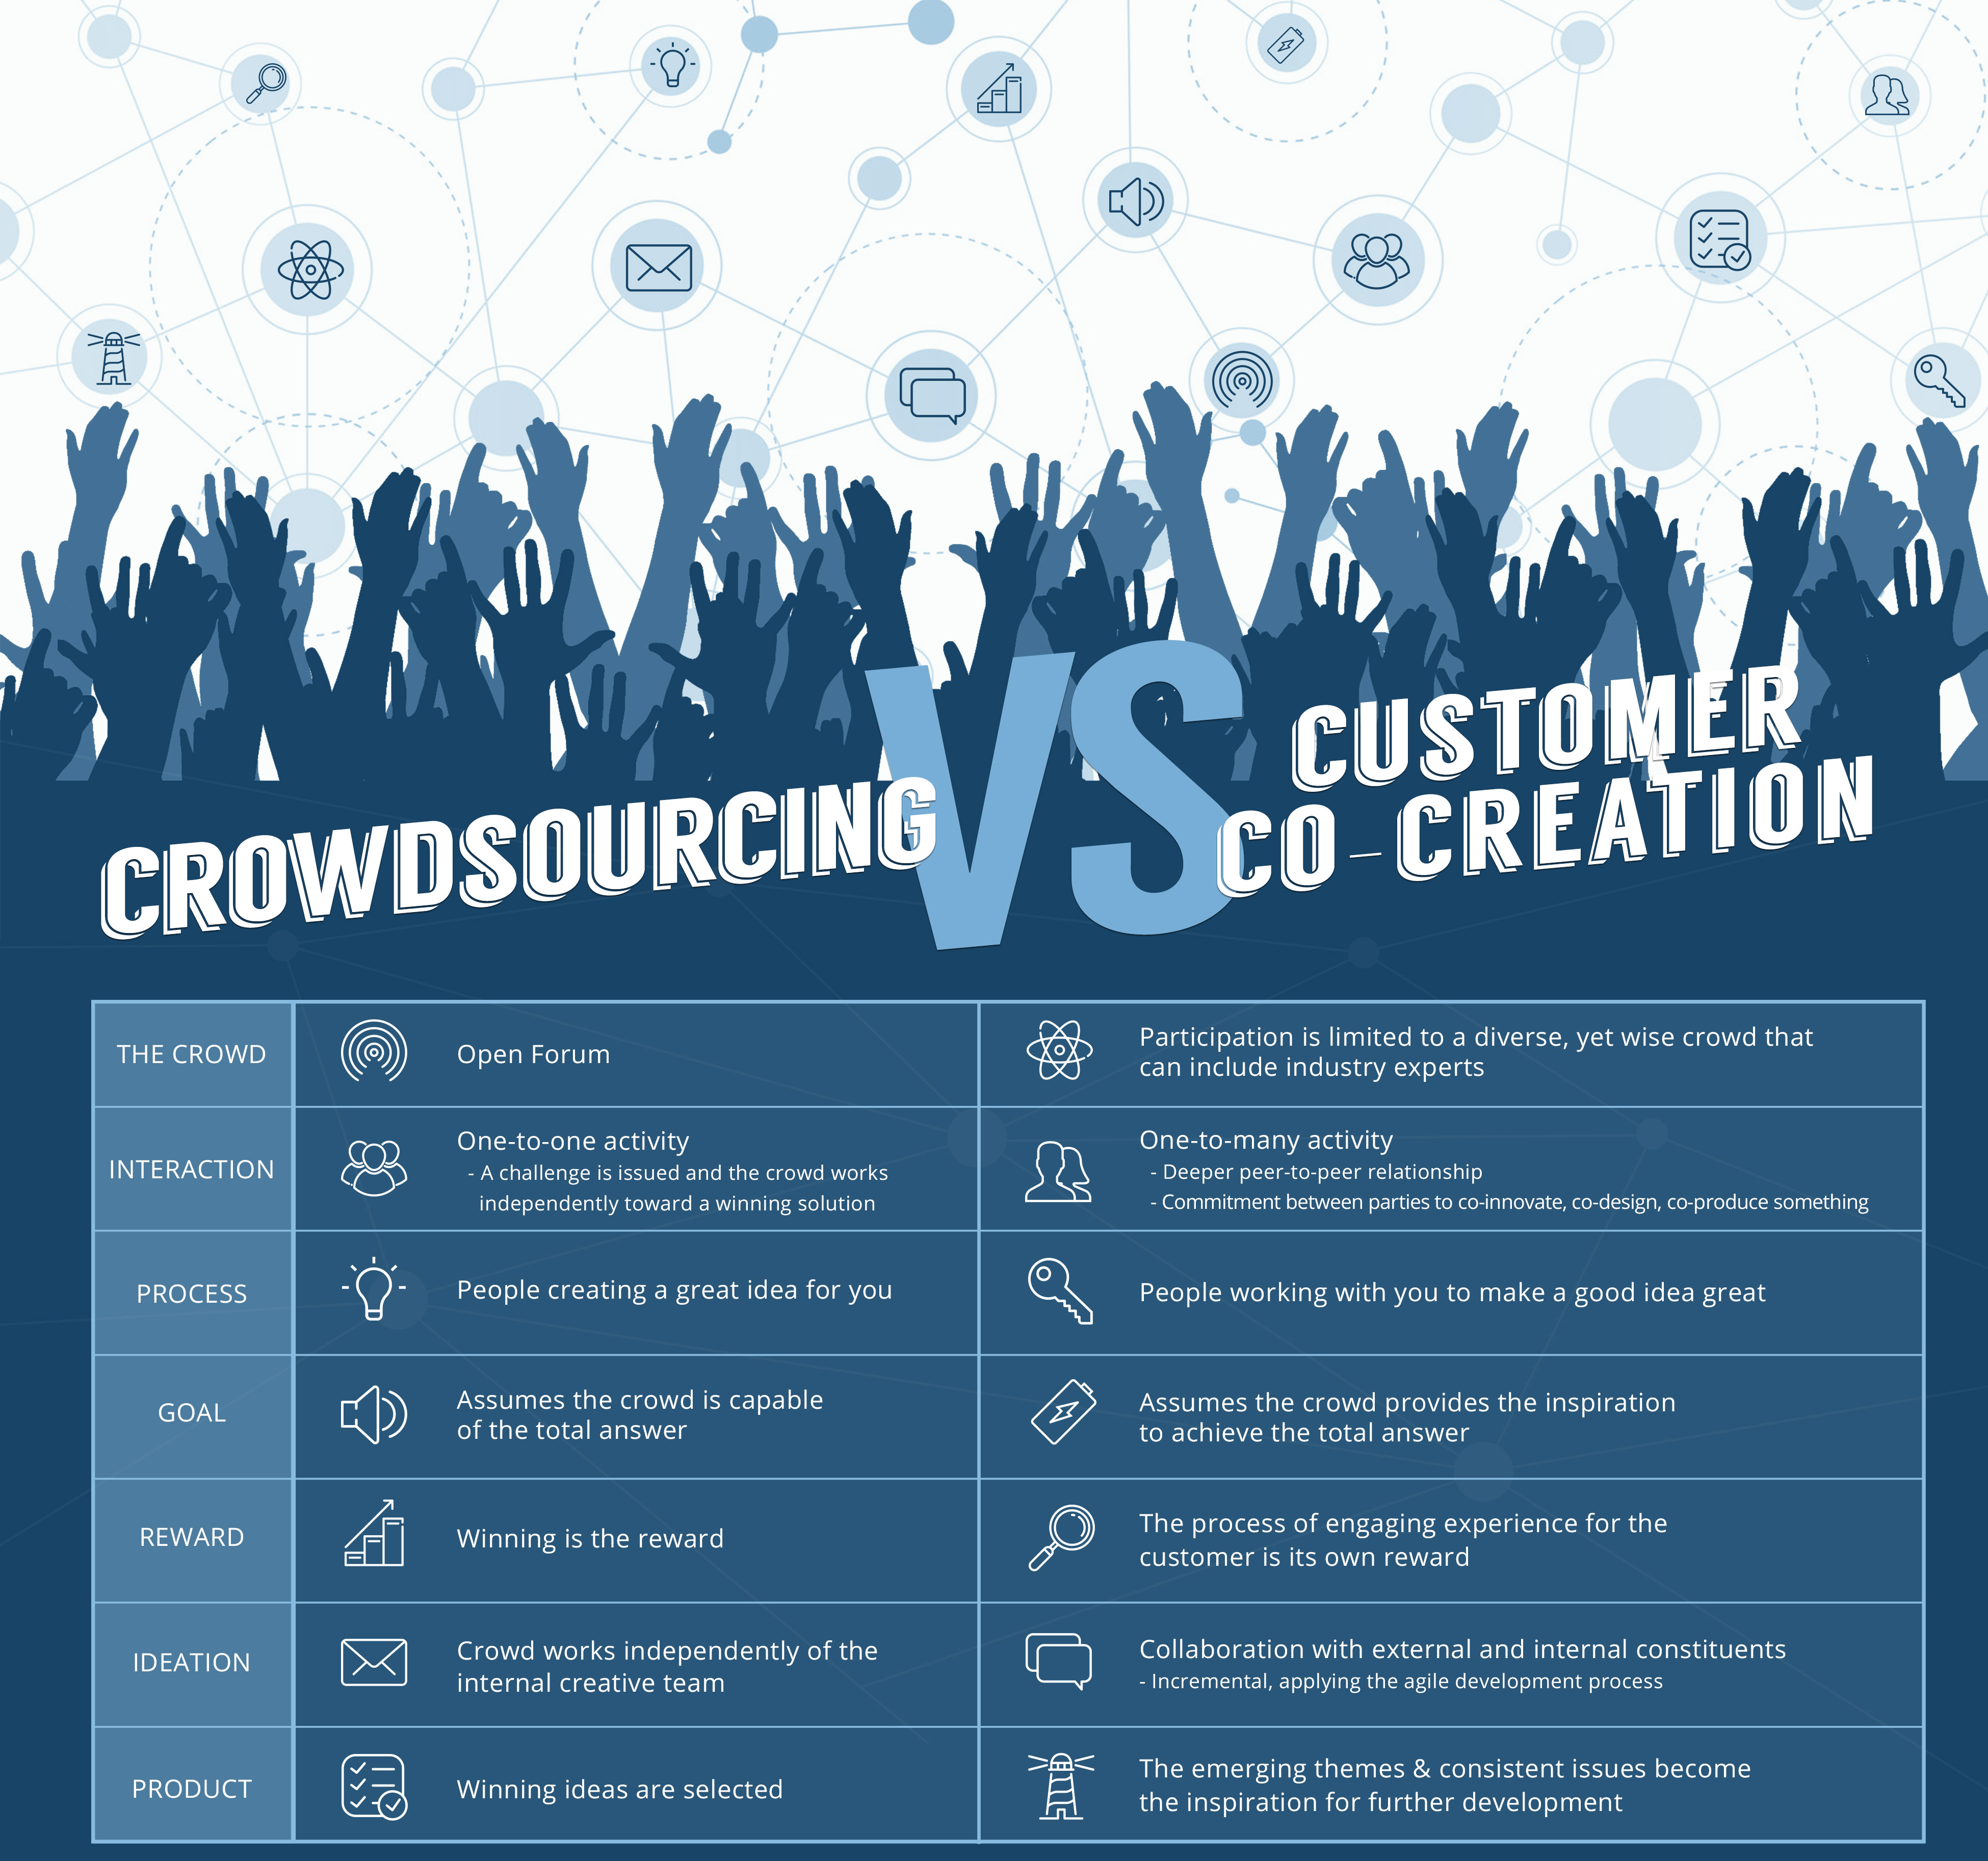 co-creation vs crowdsourcing